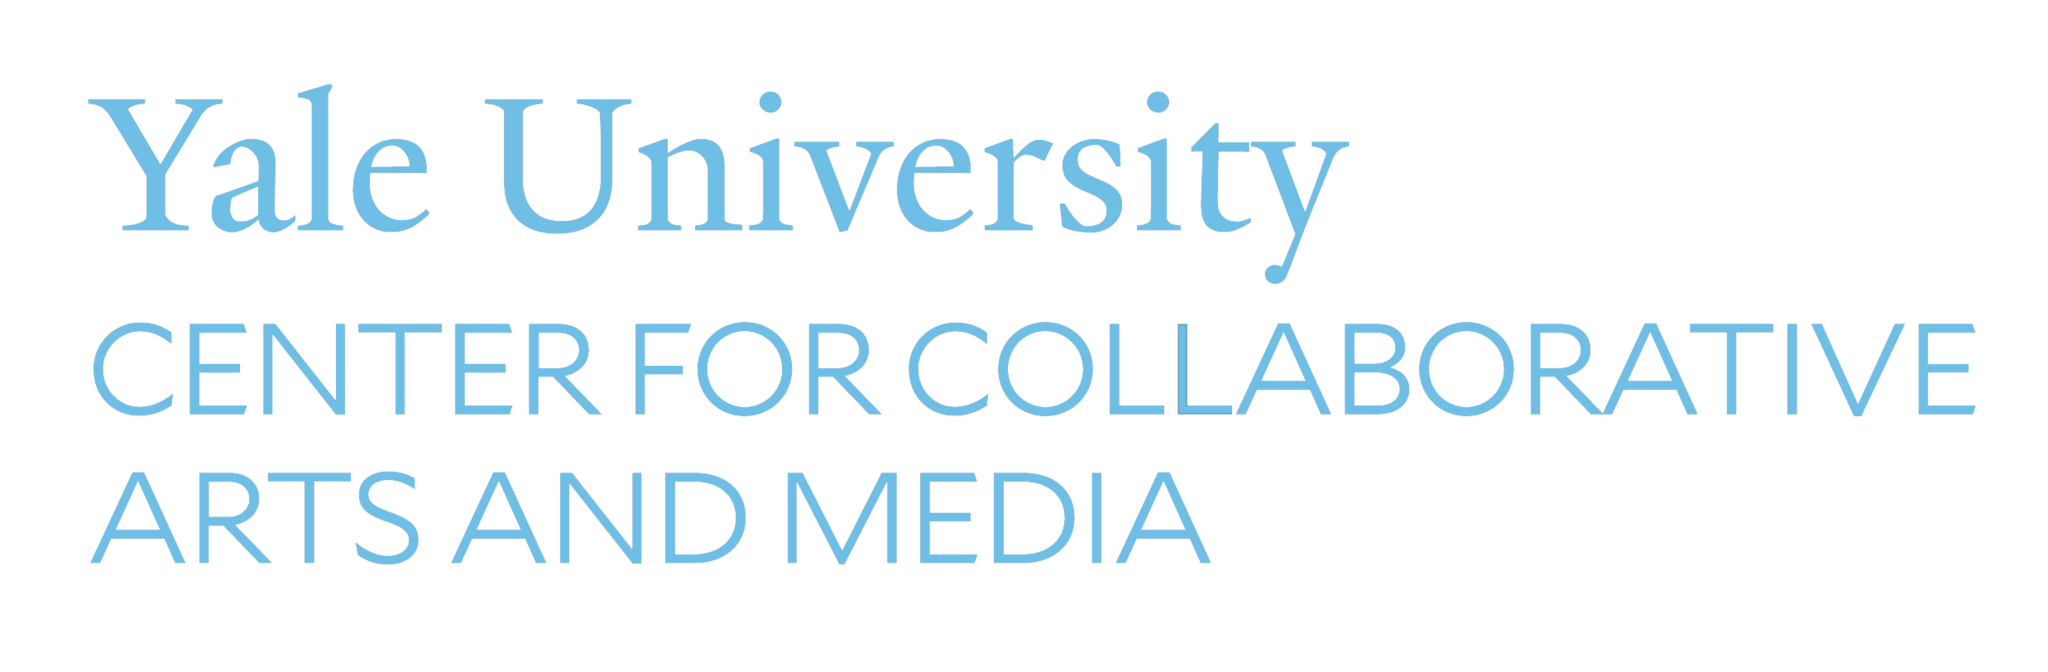 Yale University Center for Collaborative Arts and Media